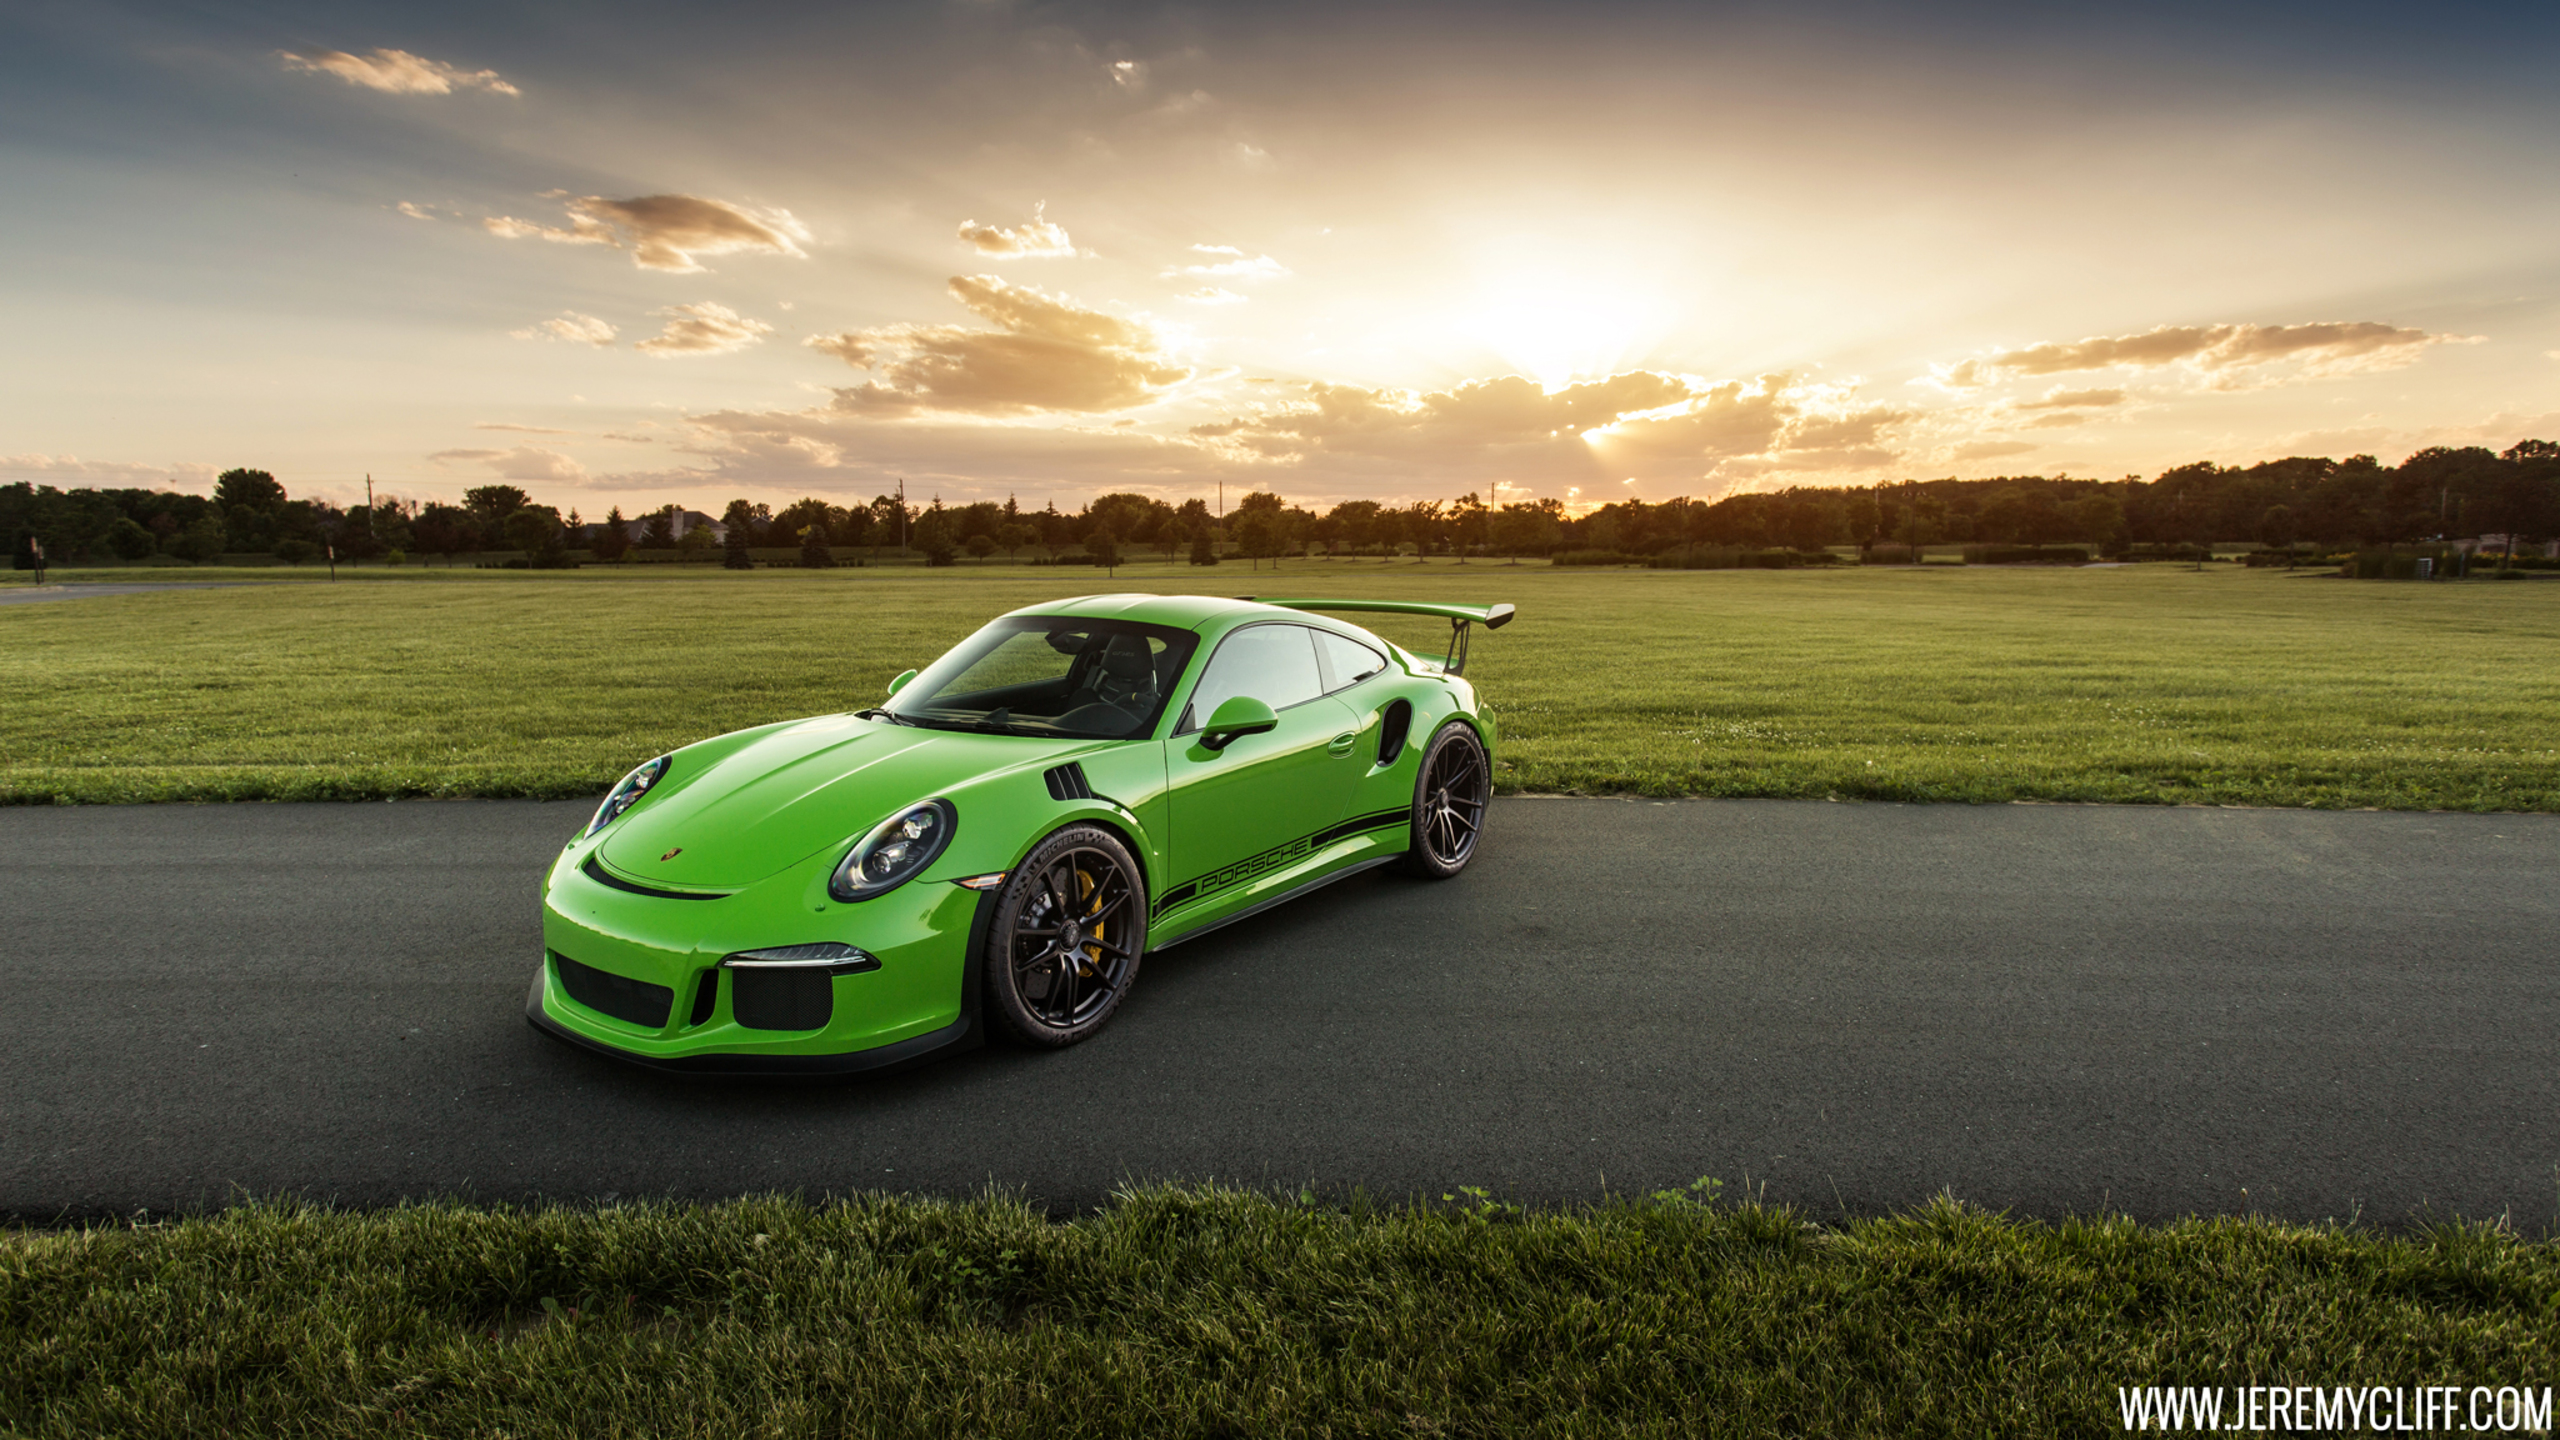 2560x1440 Porsche 911 Gt3 Rs 1440p Resolution Hd 4k Wallpapers Images Backgrounds Photos And Pictures